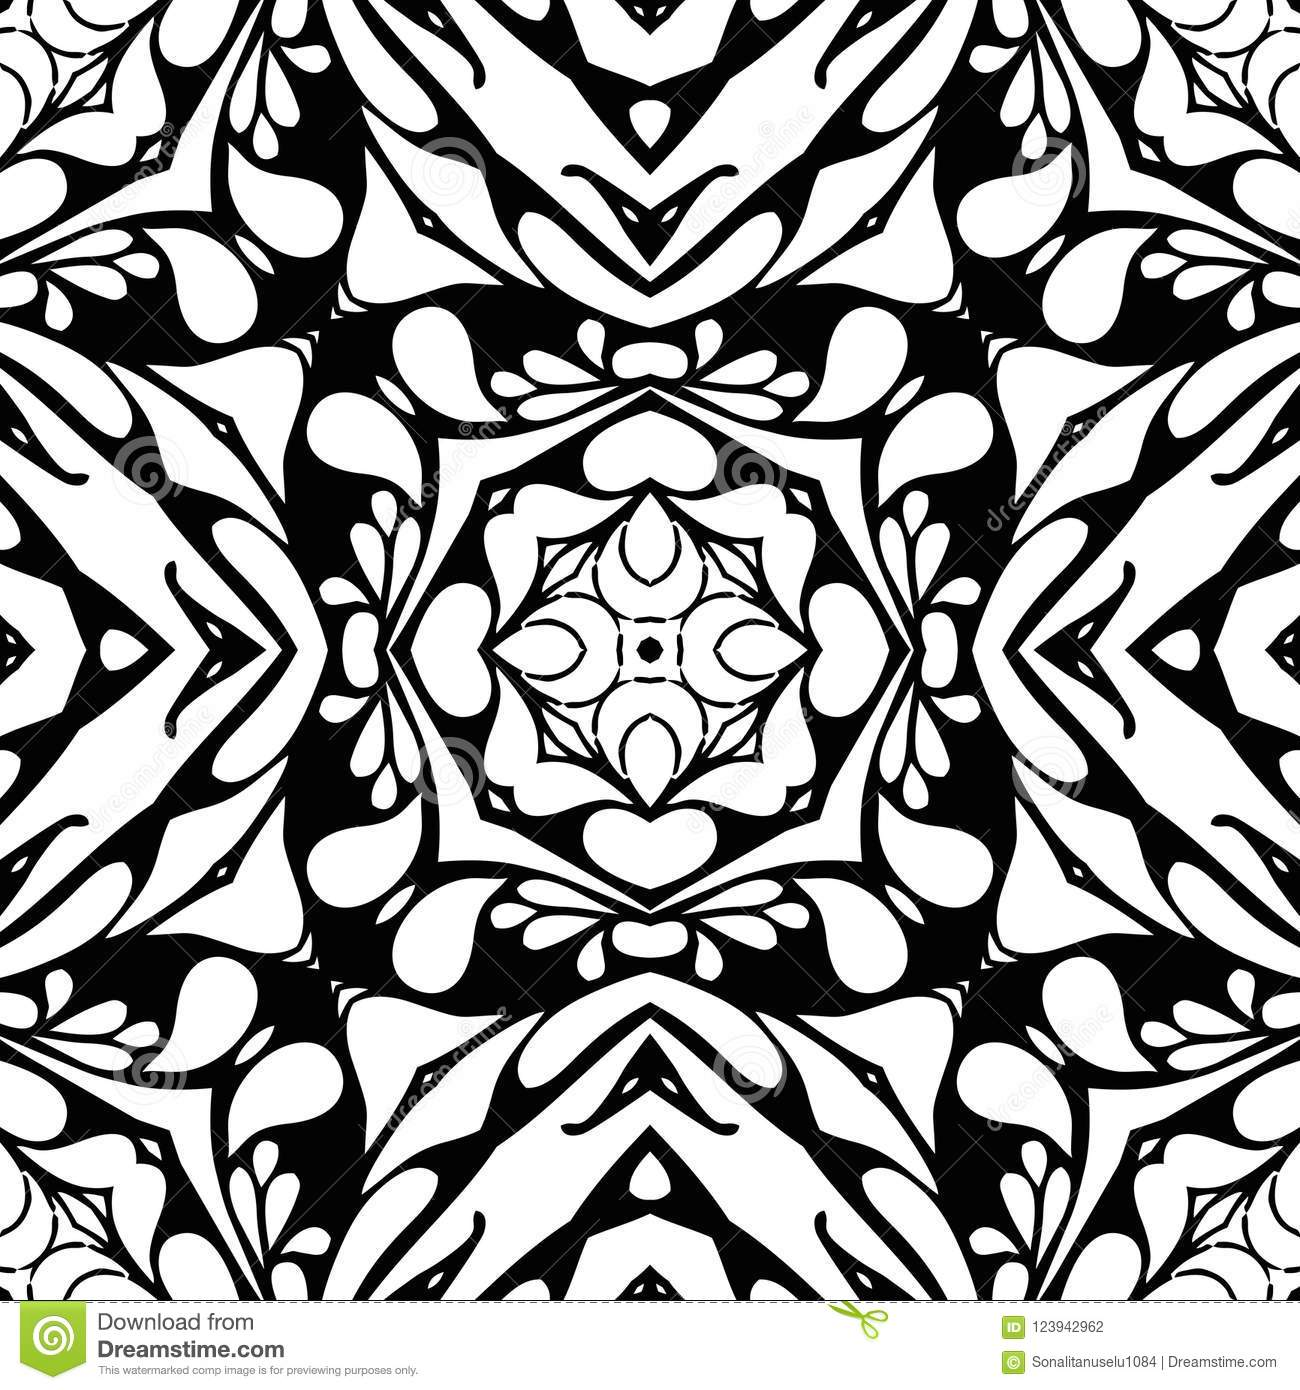 Vector Seamless Curve Pattern Black And White Abstract Background Wallpaper Illustration